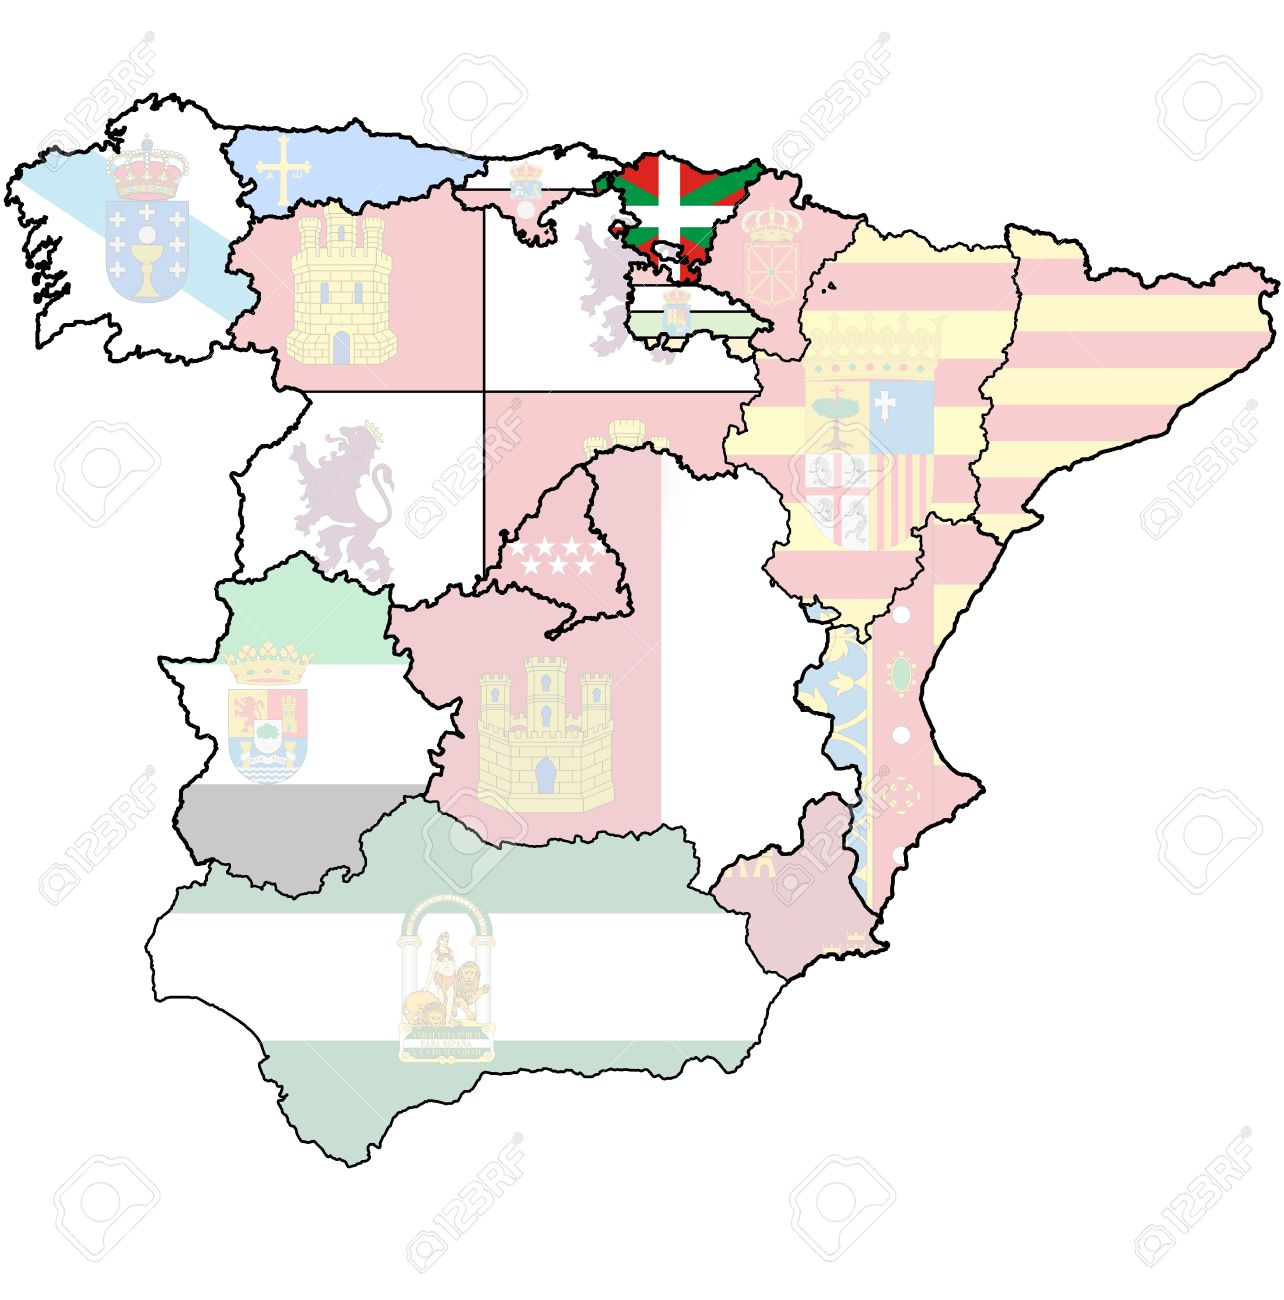 Basque Country Region On Administration Map Of Regions Of Spain.